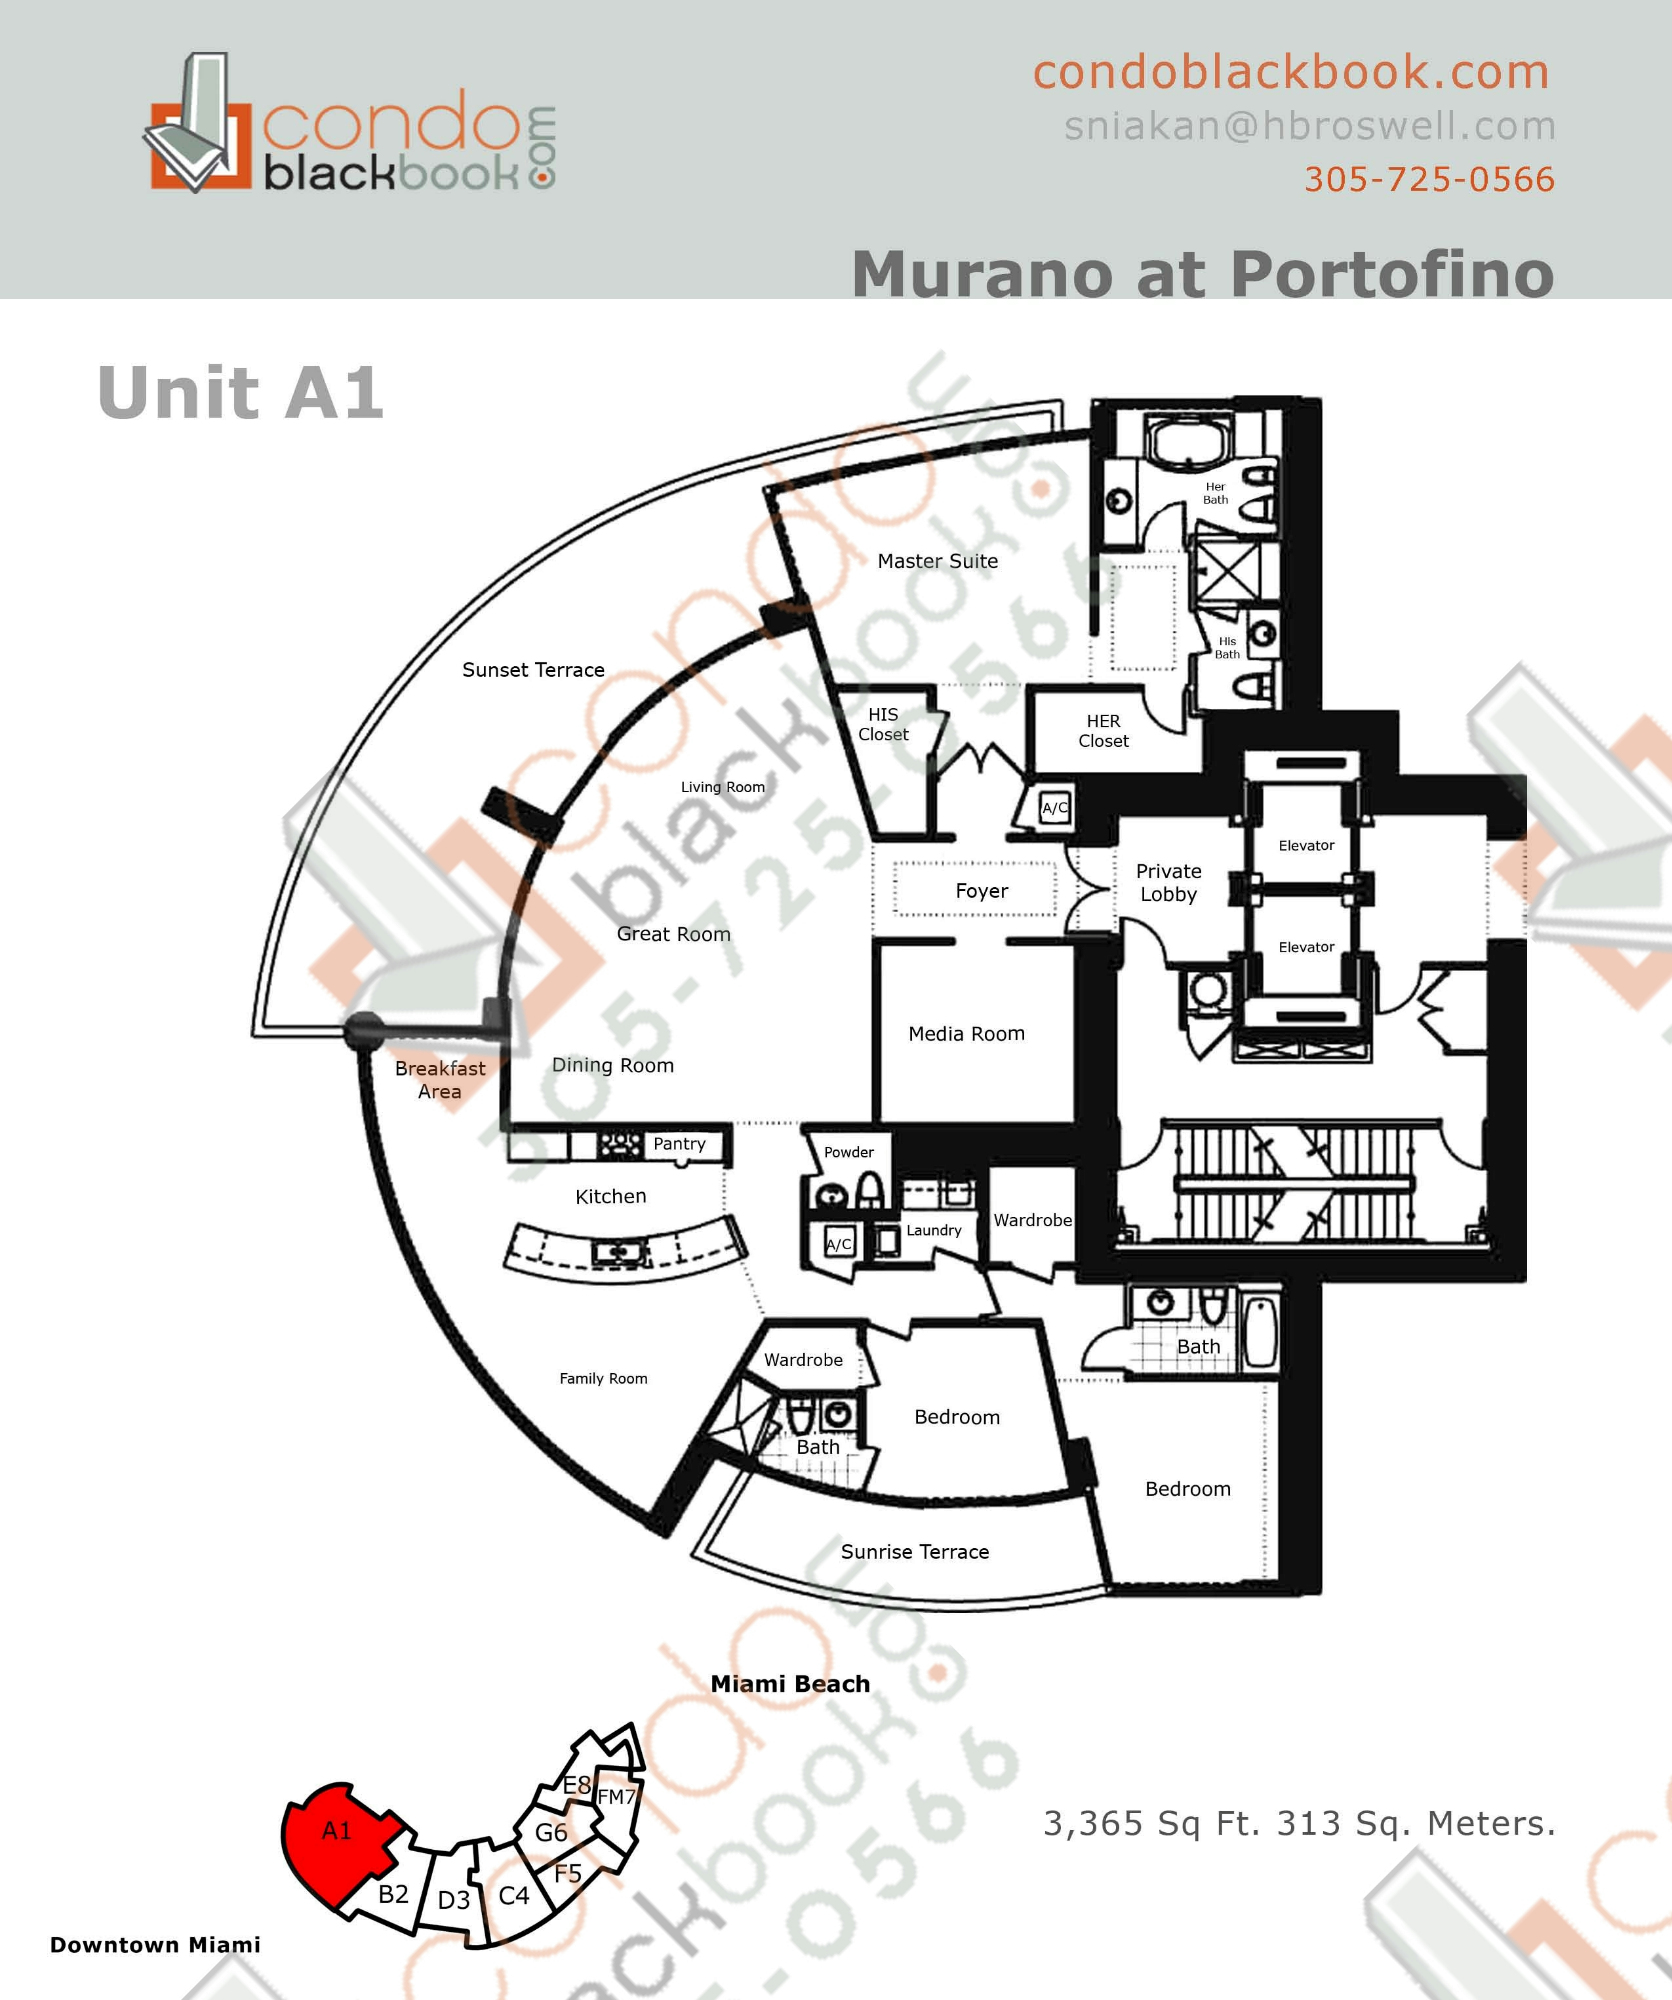 Floor plan for Murano at Portofino South Beach Miami Beach, model A, line Line 01, 3/4.5 bedrooms, 3365 sq ft